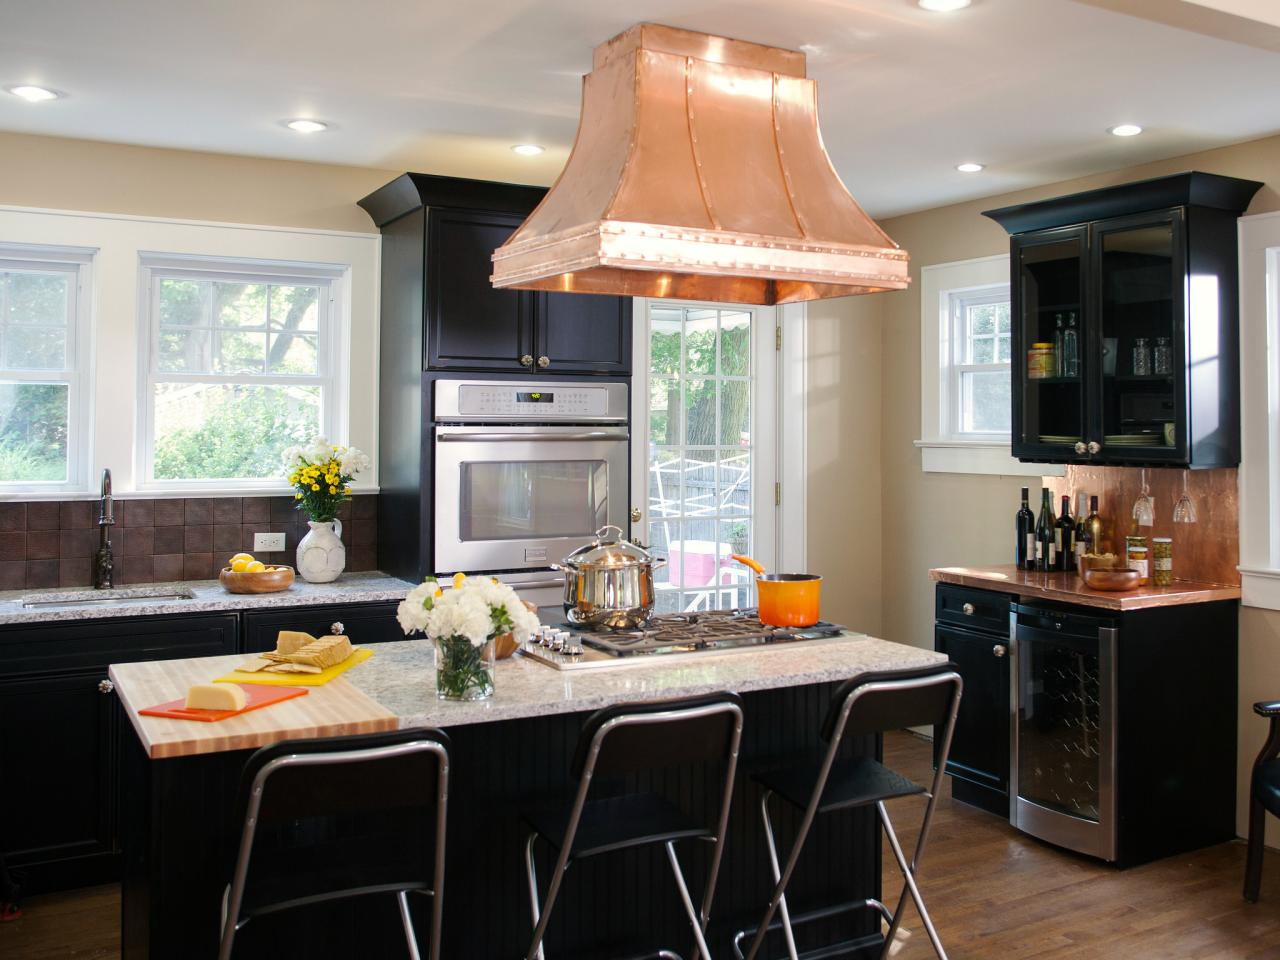 Kitchen Design Black Cabinets black kitchen cabinets: pictures, ideas & tips from hgtv | hgtv